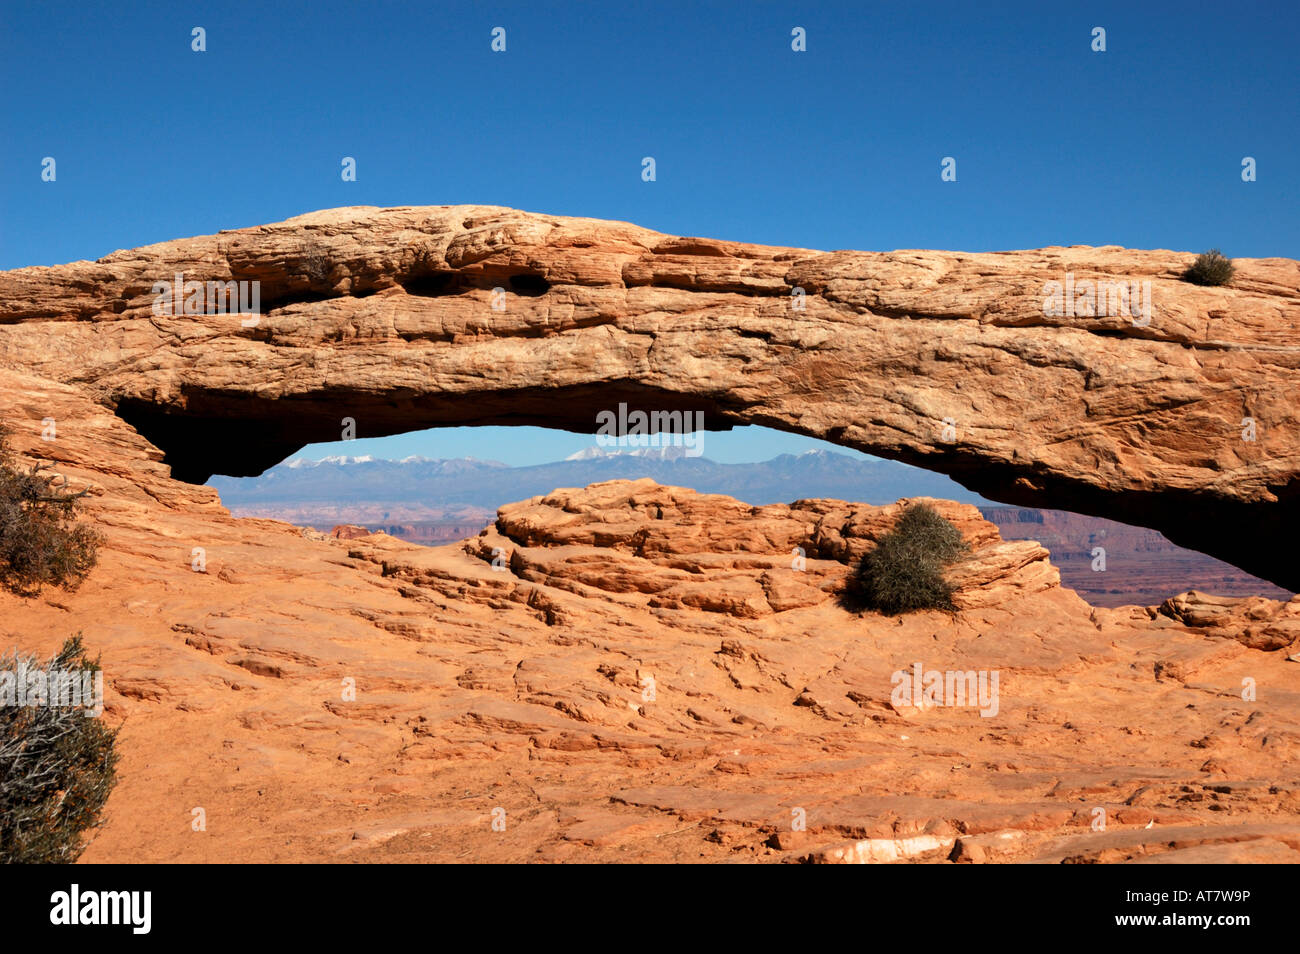 The Mesa Arch in the Canyonland National Park, Moab, Utah. - Stock Image